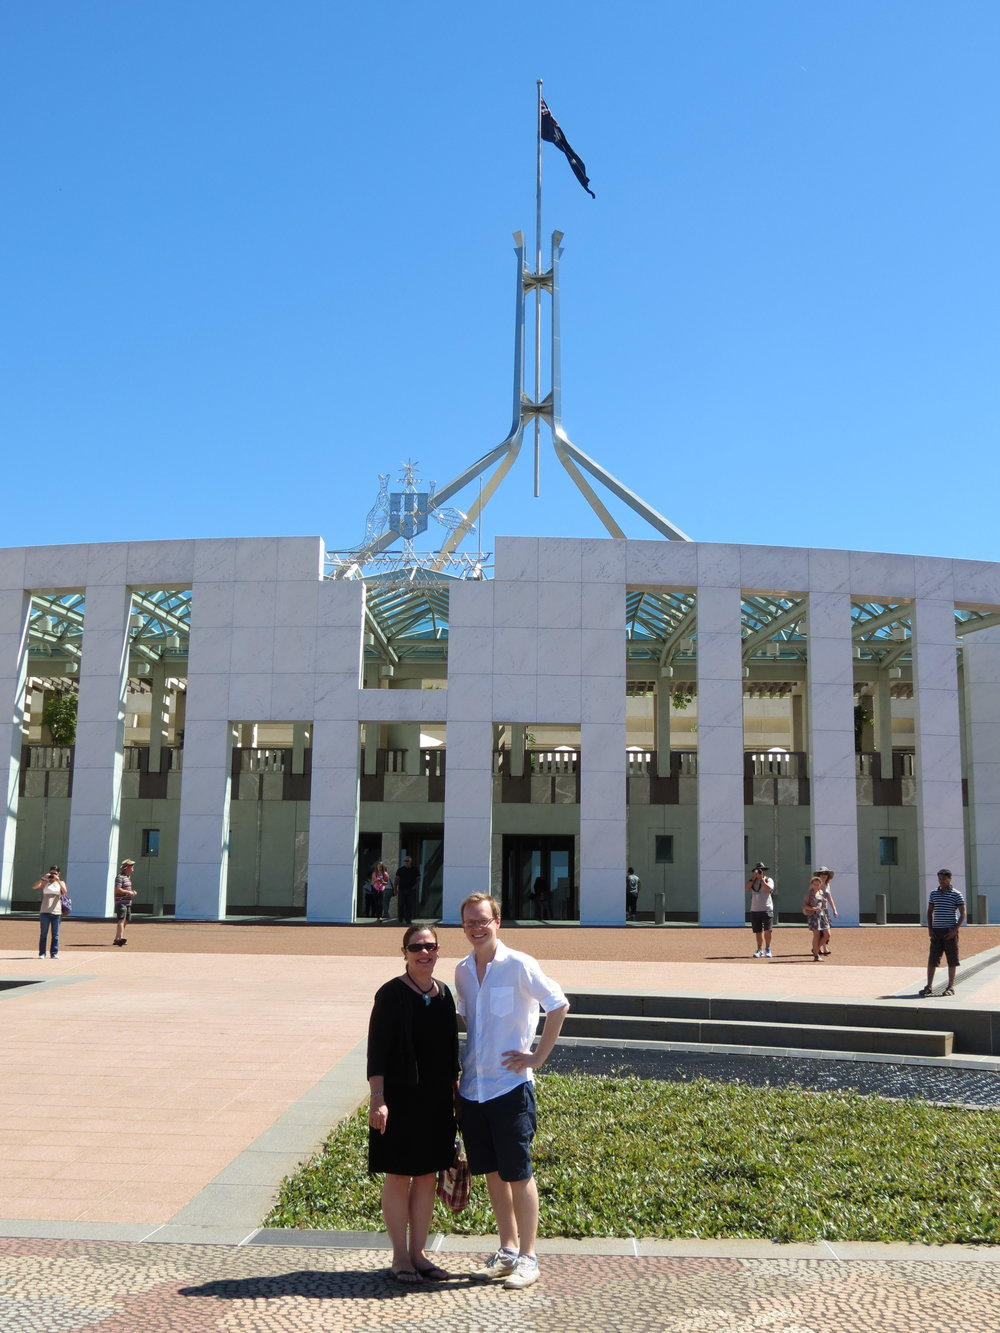 Fay and Sam post in front of the new Parliament Building in Canberra